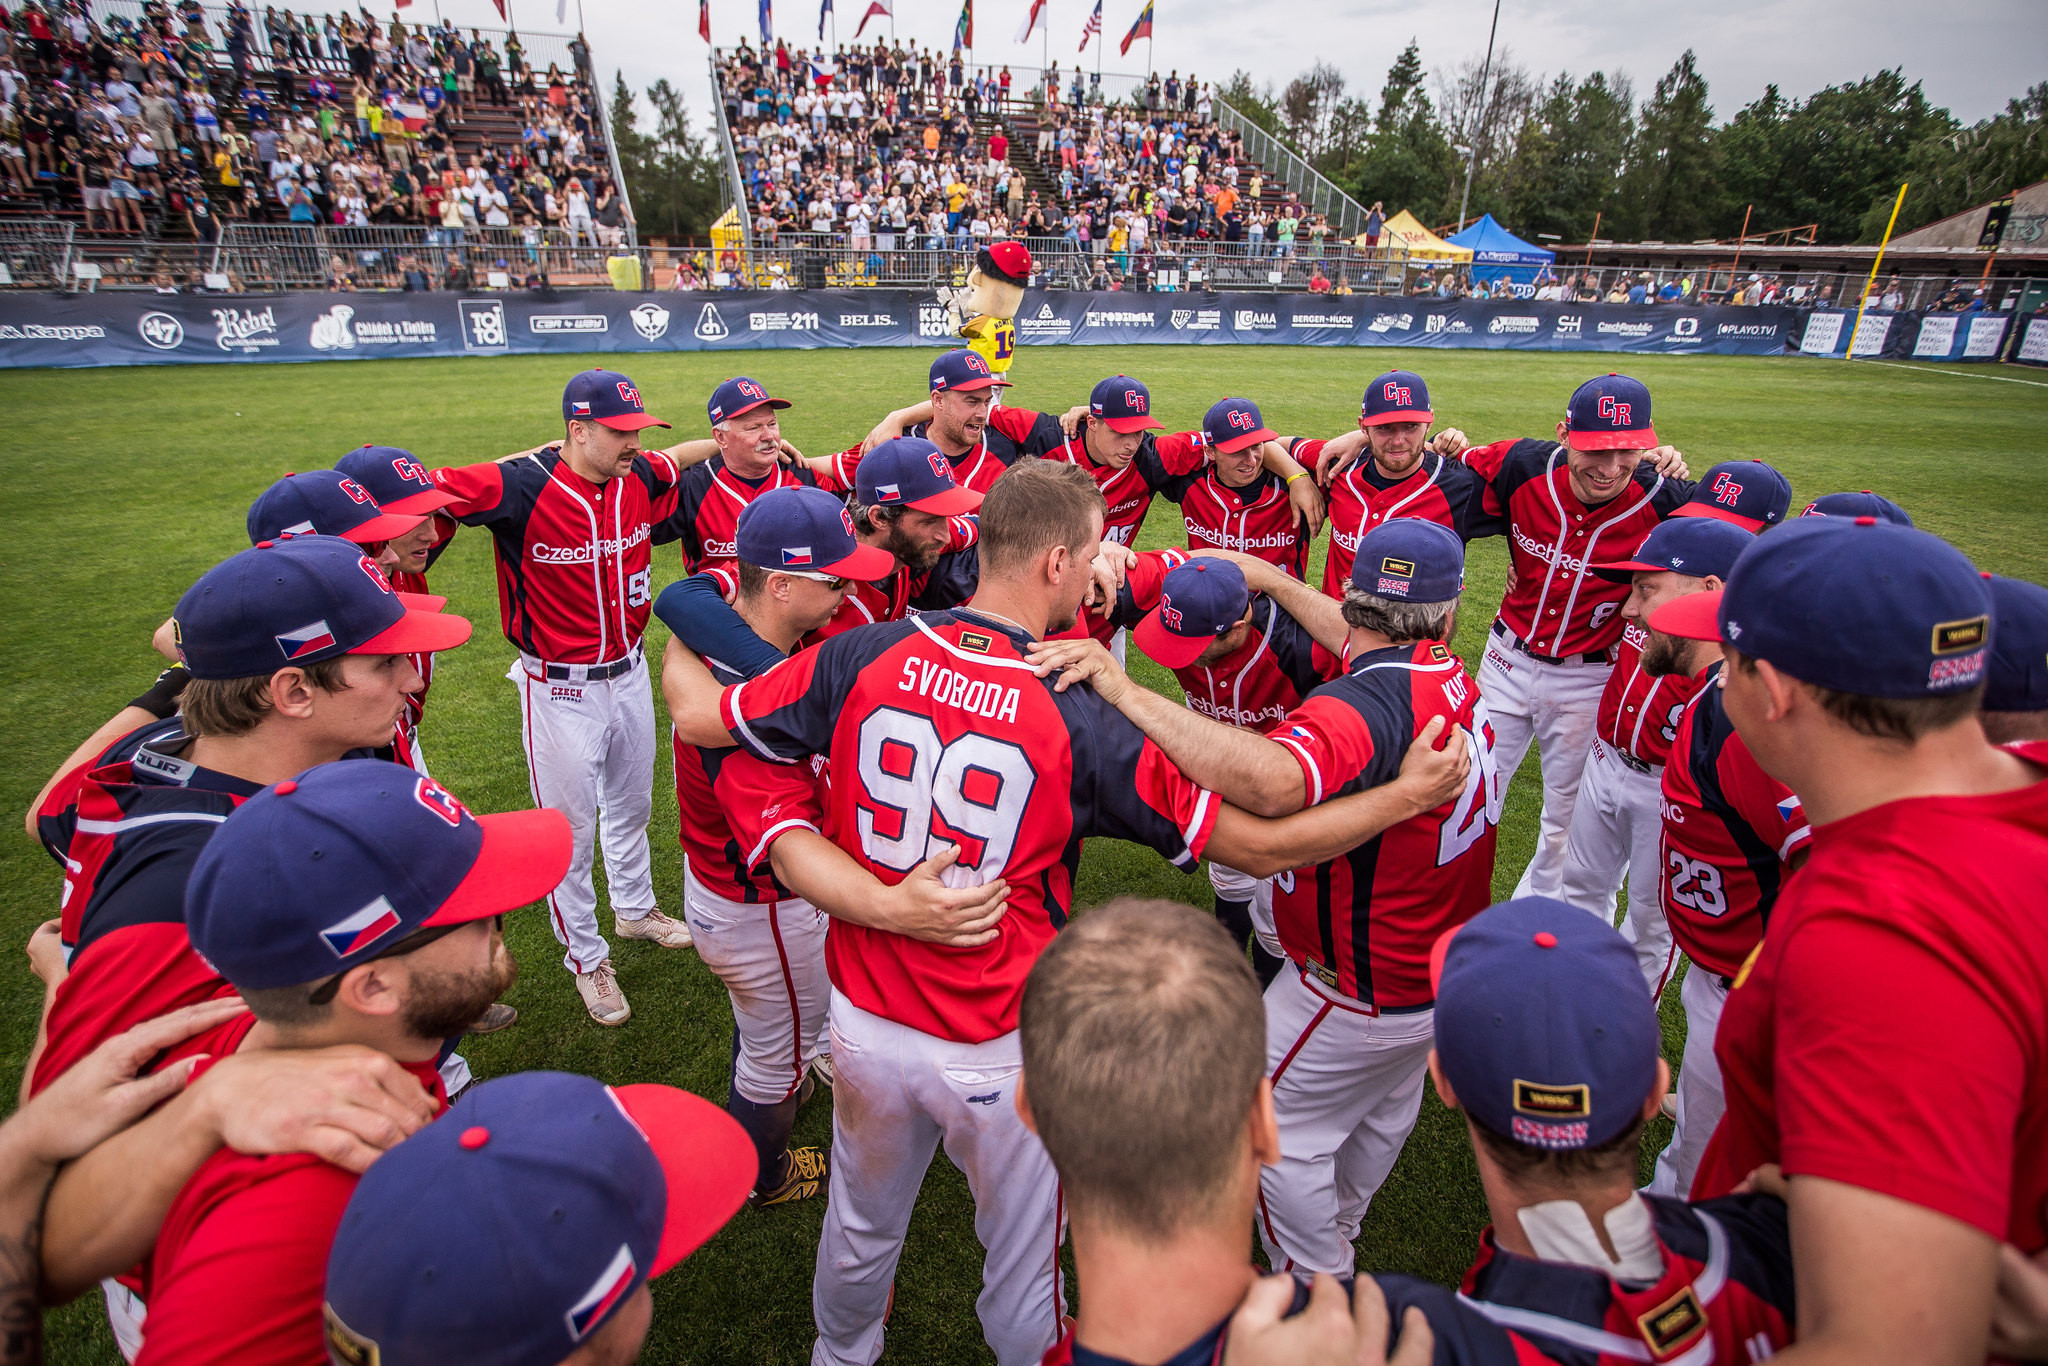 WBSC announce new dates for Men's Softball World Cup in 2022